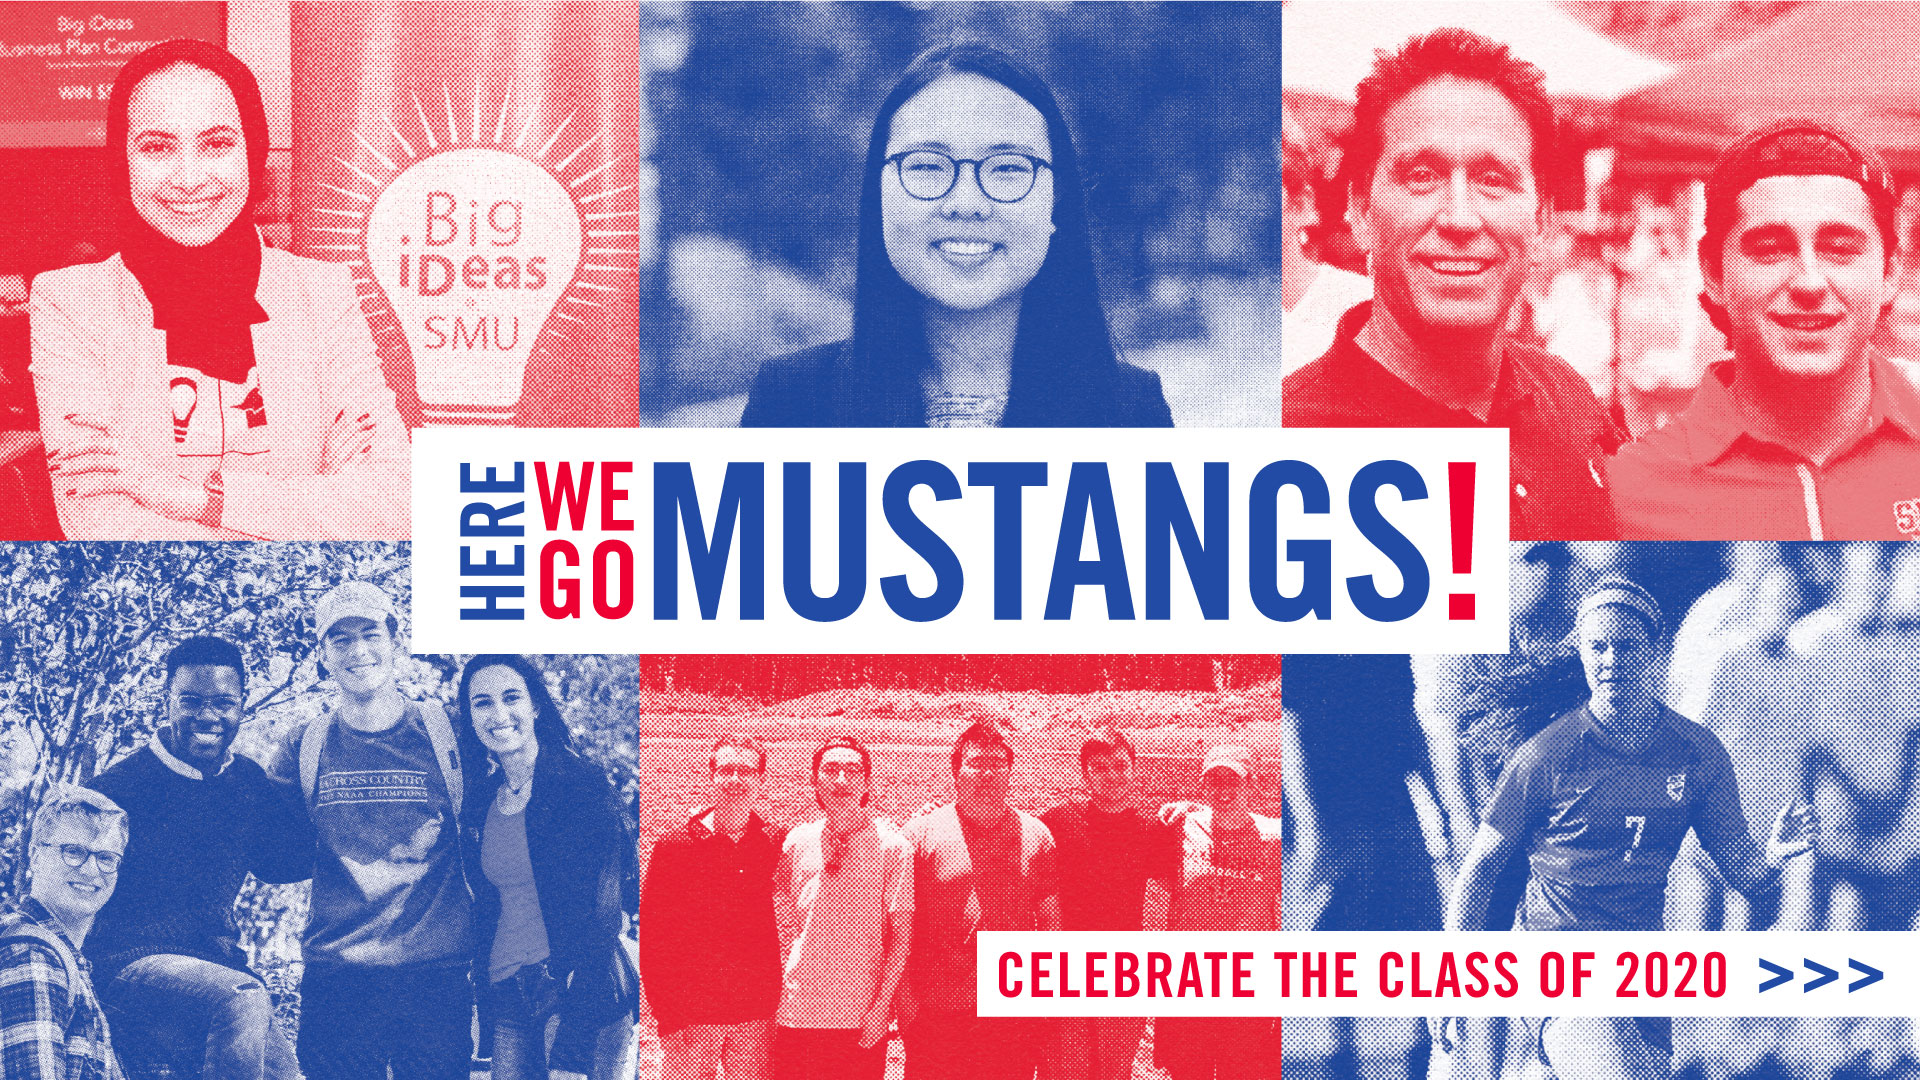 Featured Story: Here we go Mustangs!